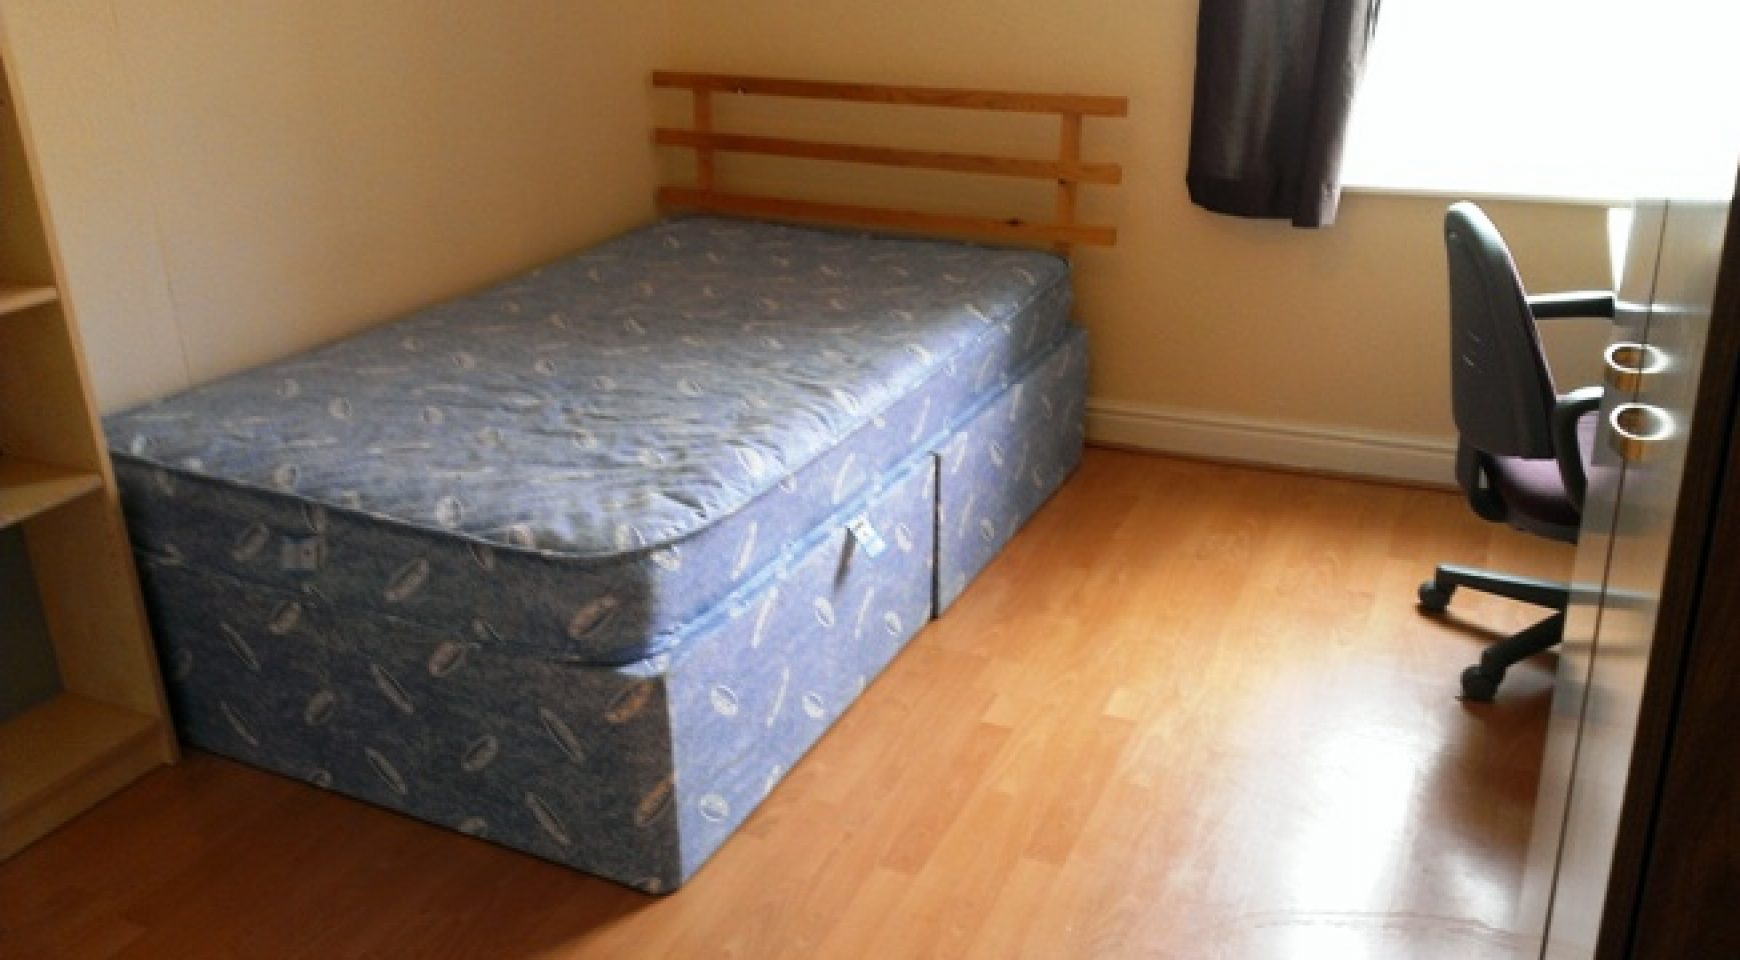 Llantrisant Street 5 Bed Property 1 Room Available